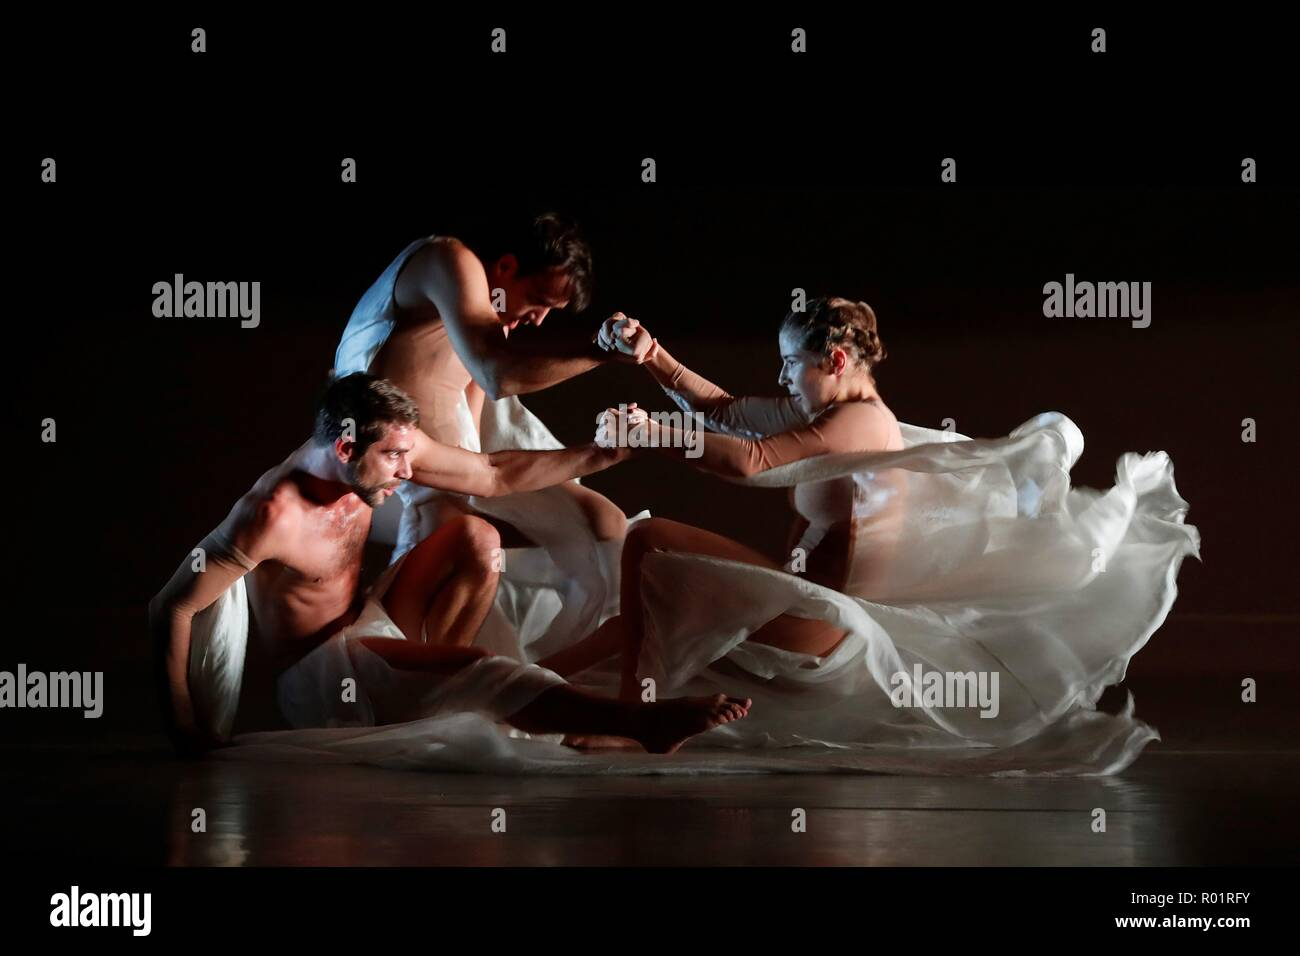 Spanish dancer and choreographer Blanca Li presents her latest show 'Solstice', in Madrid, Spain, 31 October 2018. The production has been co-managed by the 'Teatros del Canal' and the Chaillot Theater of Paris. EFE/J.P.Gandul - Stock Image